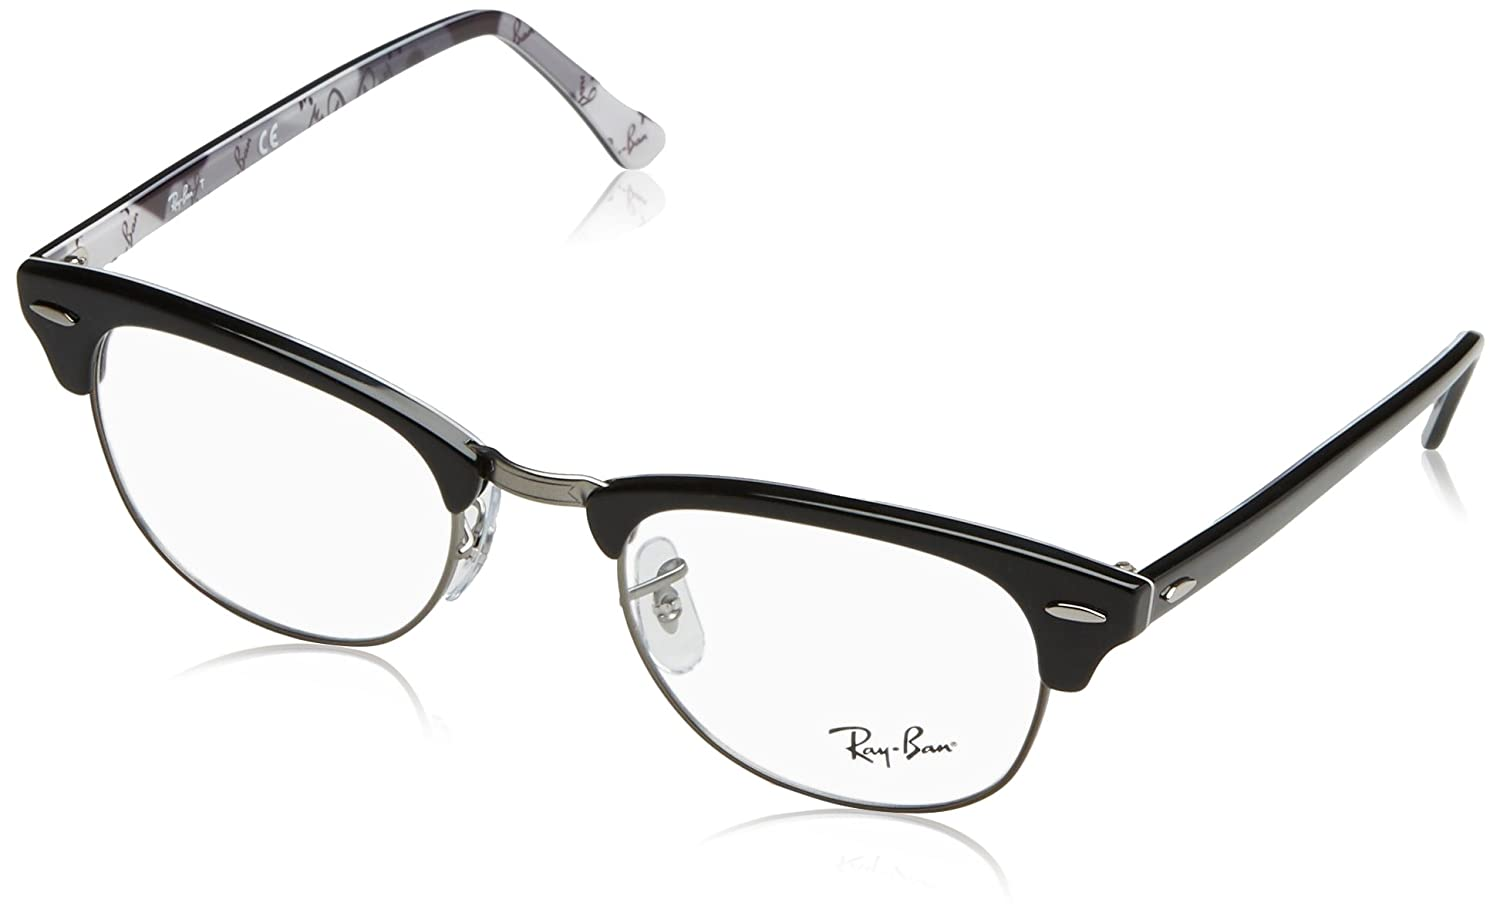 5ab4b271732 Amazon.com  Ray-Ban Clubmaster No Polarization Square Prescription Eyewear  Frame